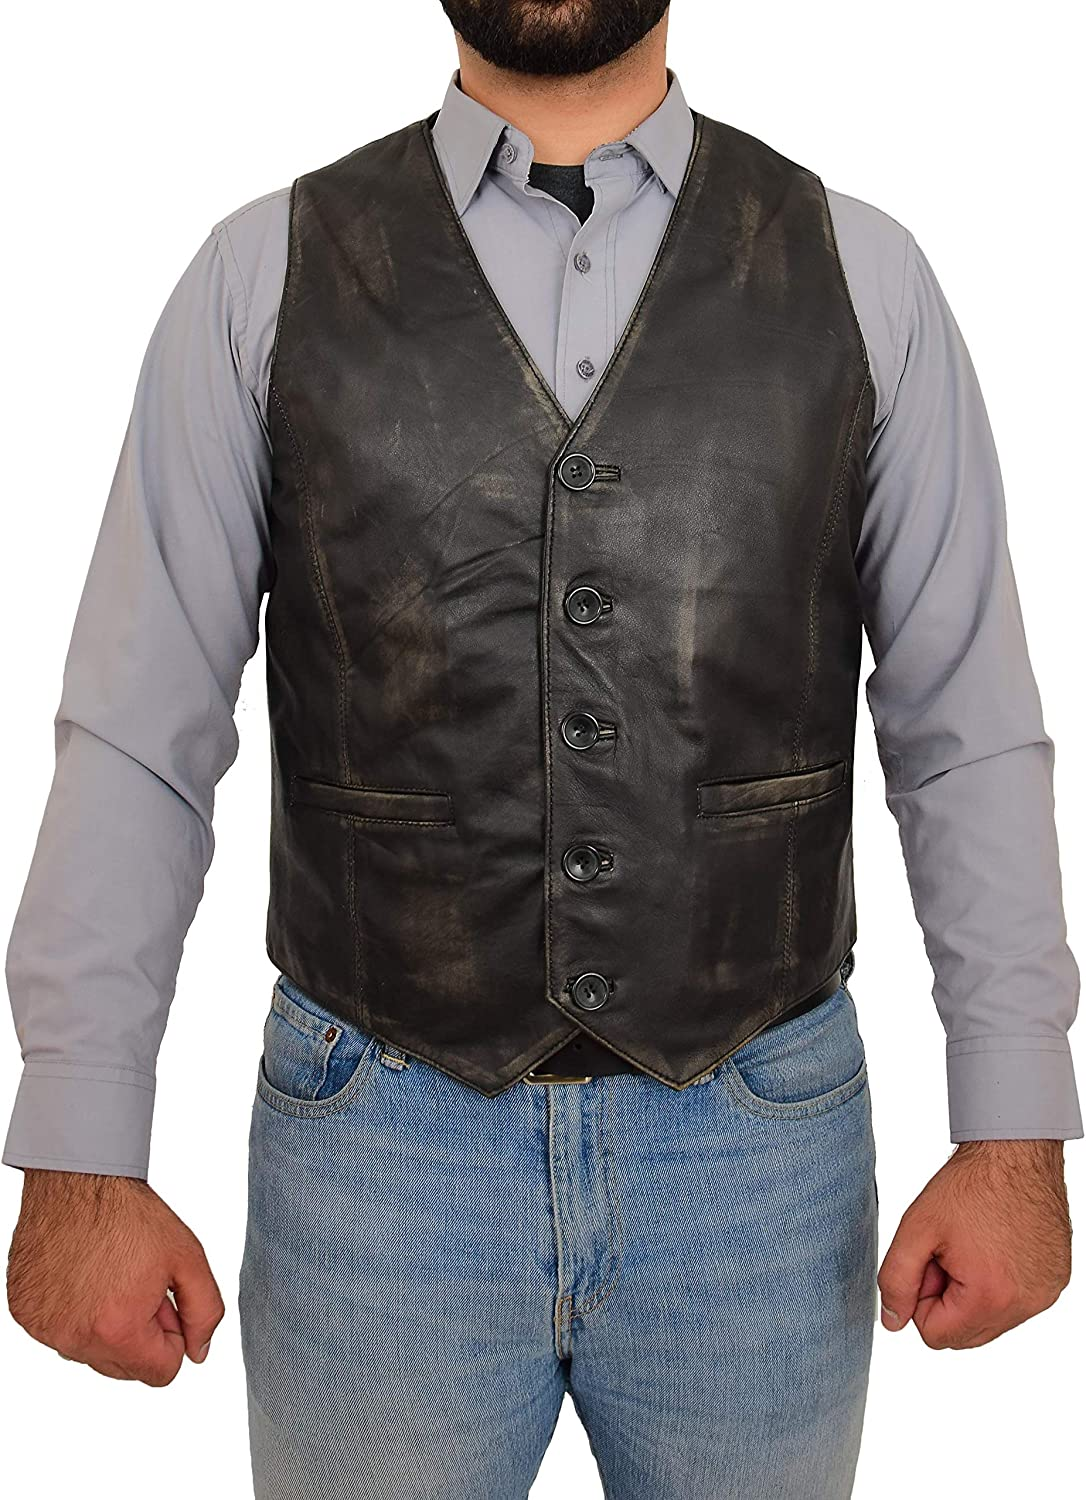 Mens Traditional Leather Waistcoat Button Fastening Vest Nick Black Rub Off